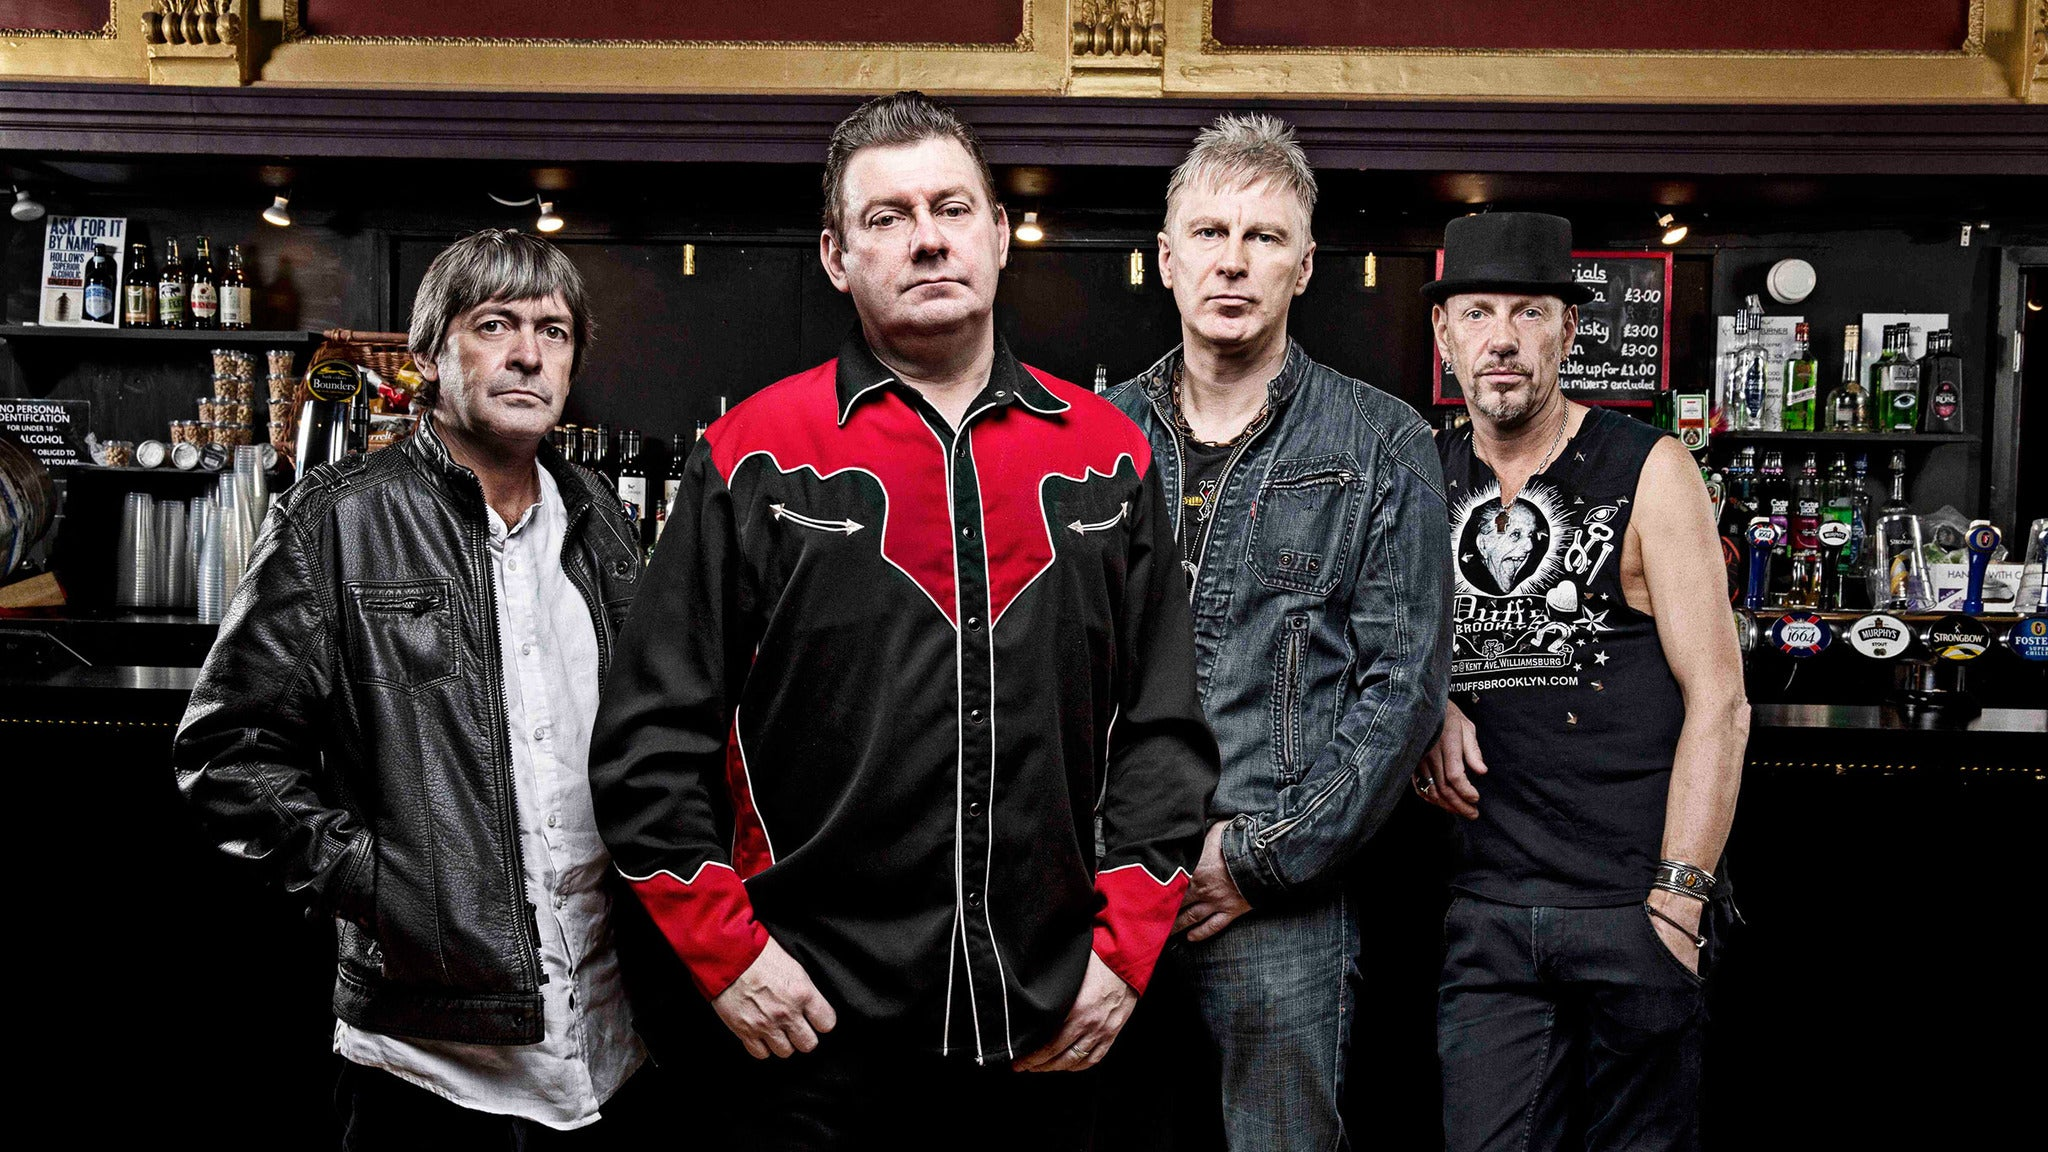 SORRY, THIS EVENT IS NO LONGER ACTIVE<br>Stiff Little Fingers at Granada - Lawrence, KS 66044